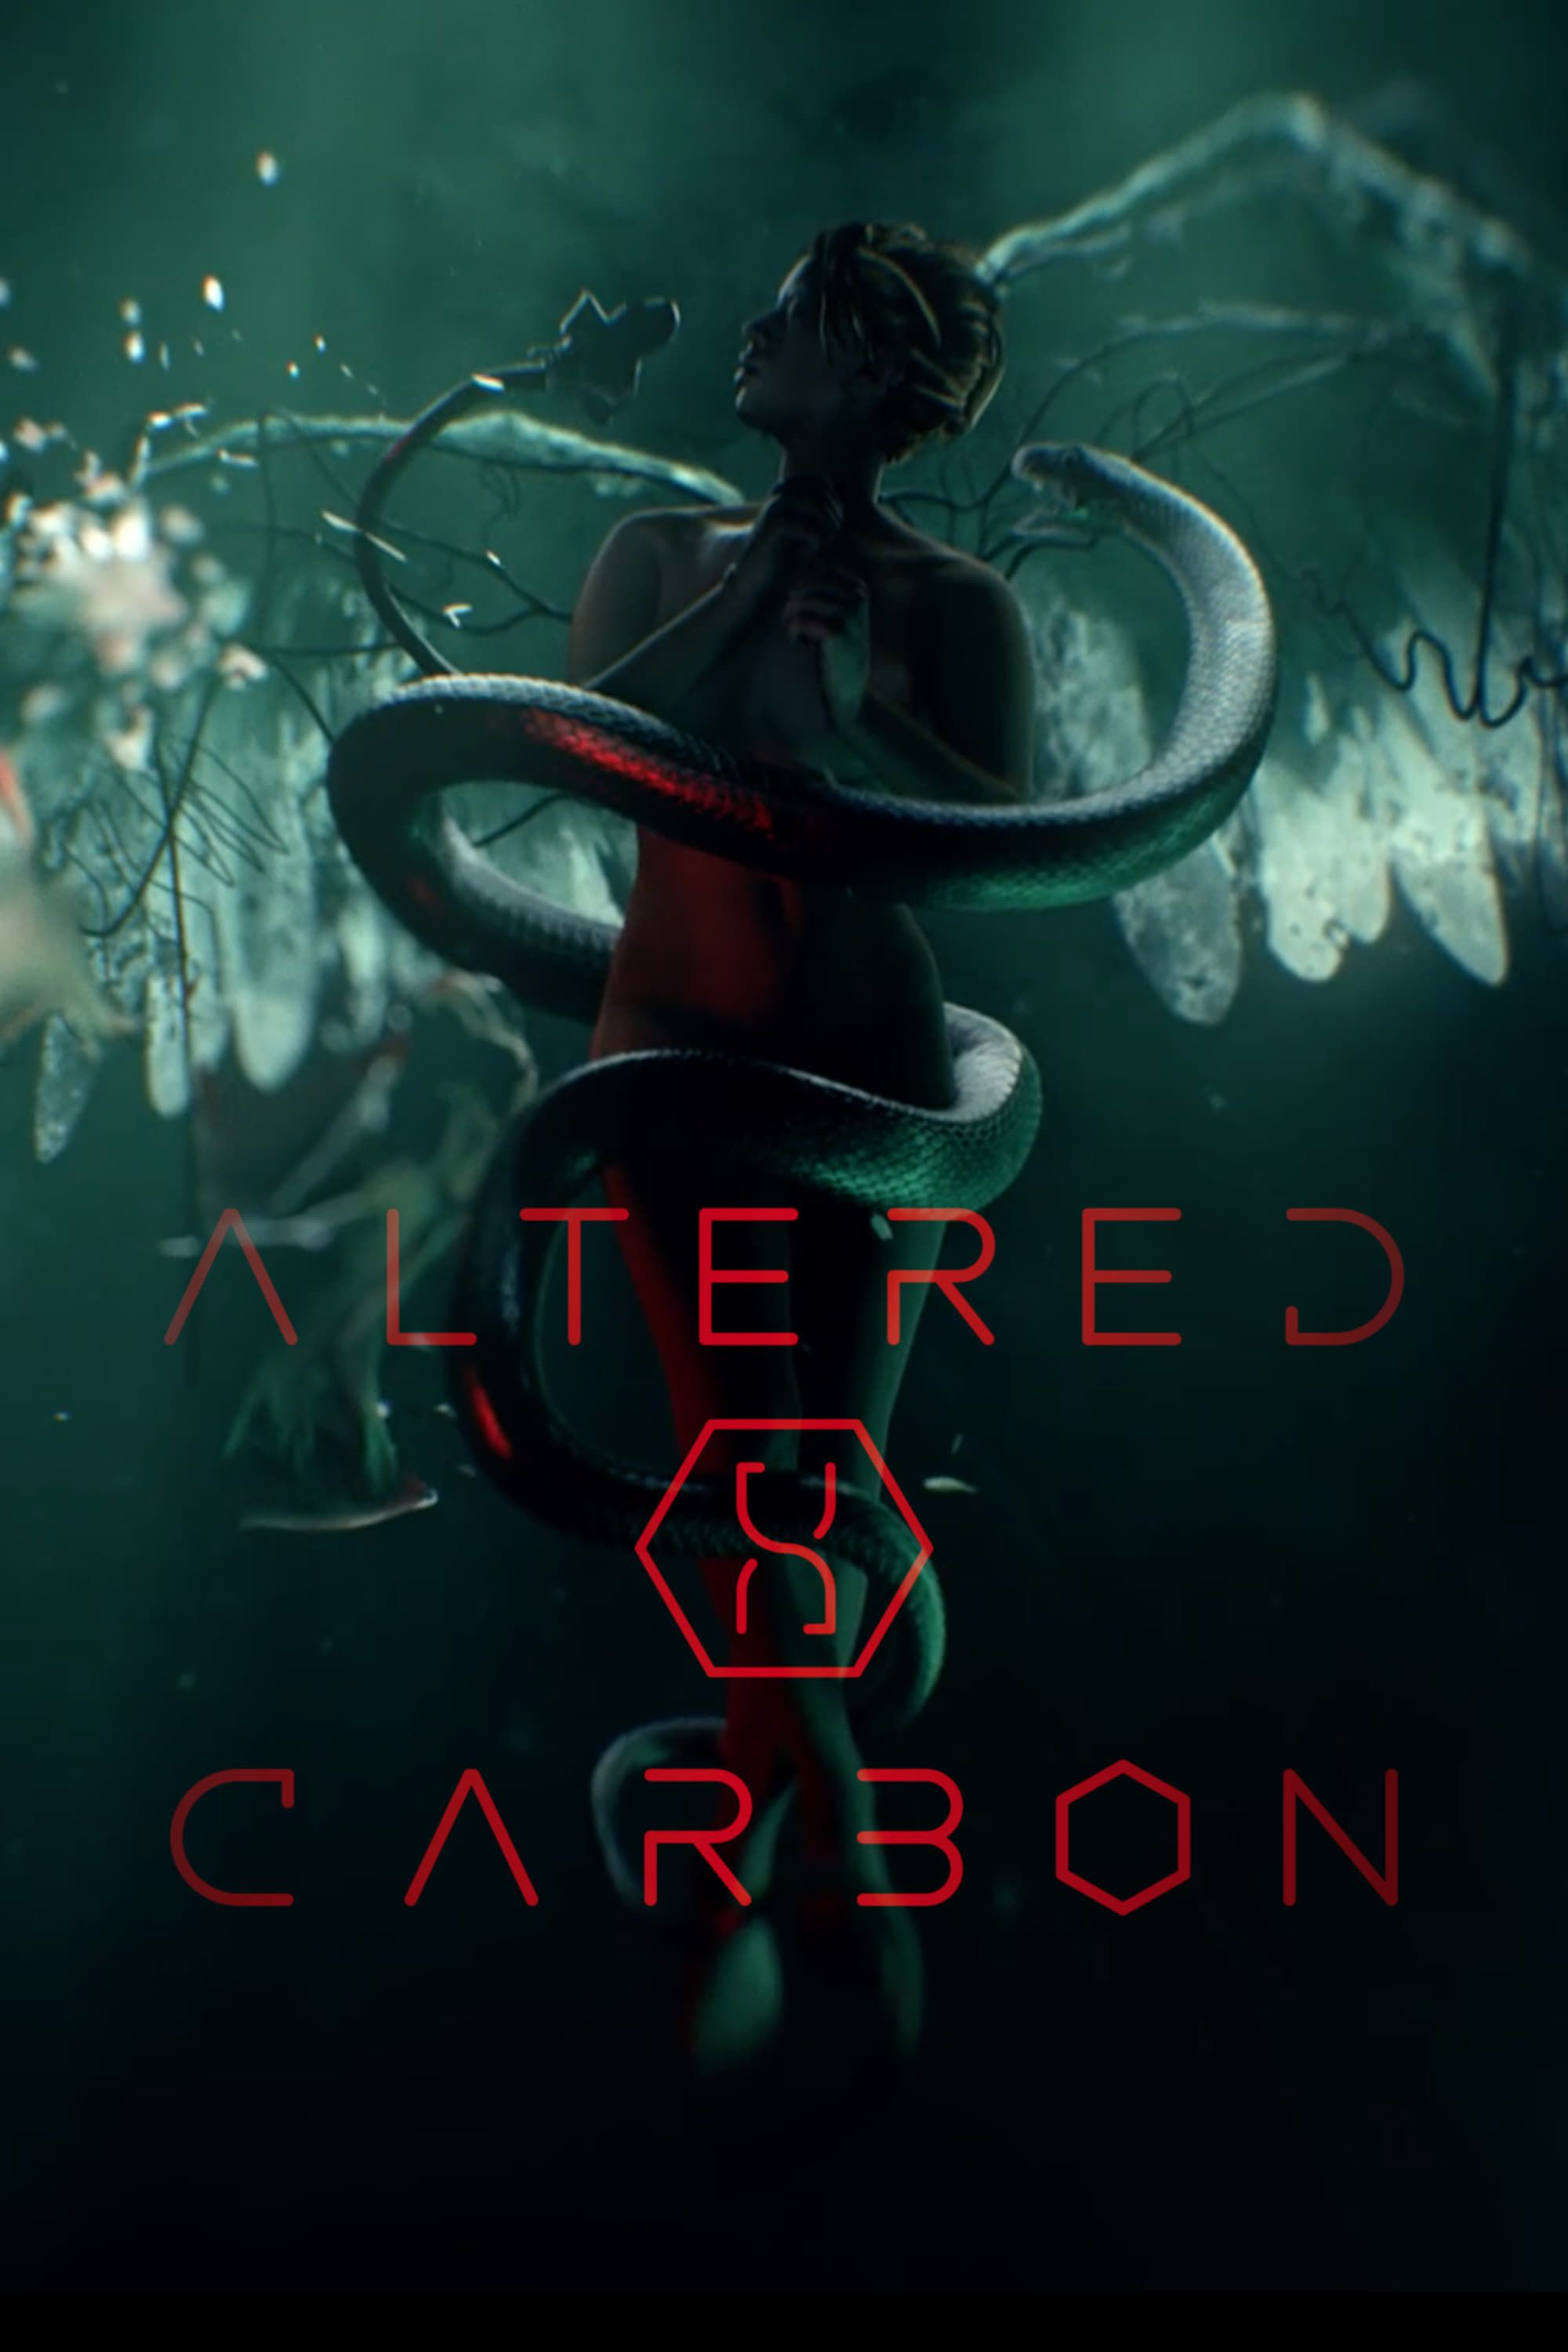 Altered Carbon Season 2 With Images Altered Carbon Carbon